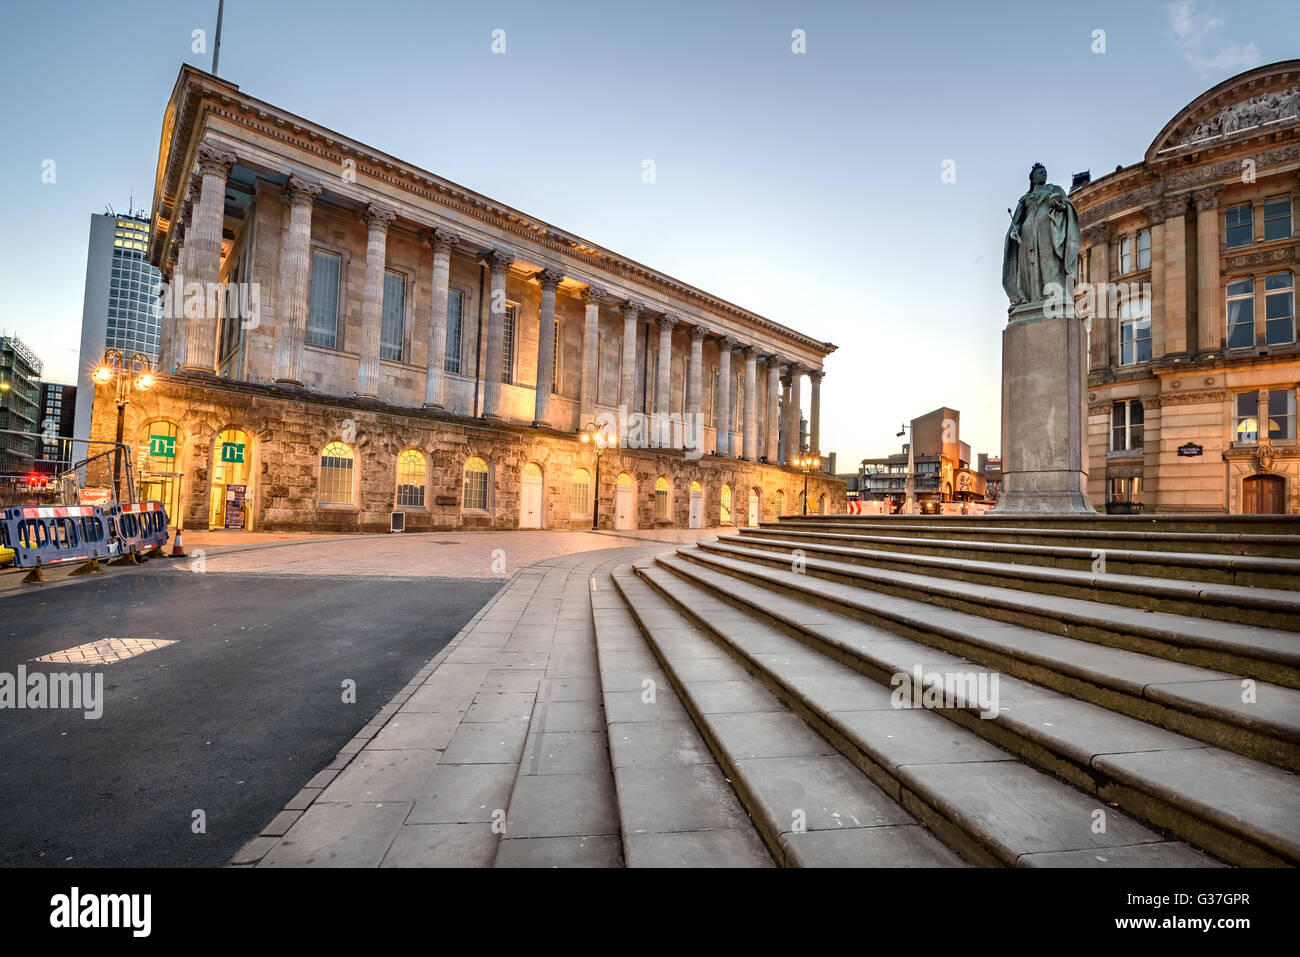 Birmingham Town Hall is situated in Victoria Square, Birmingham, England. - Stock Image